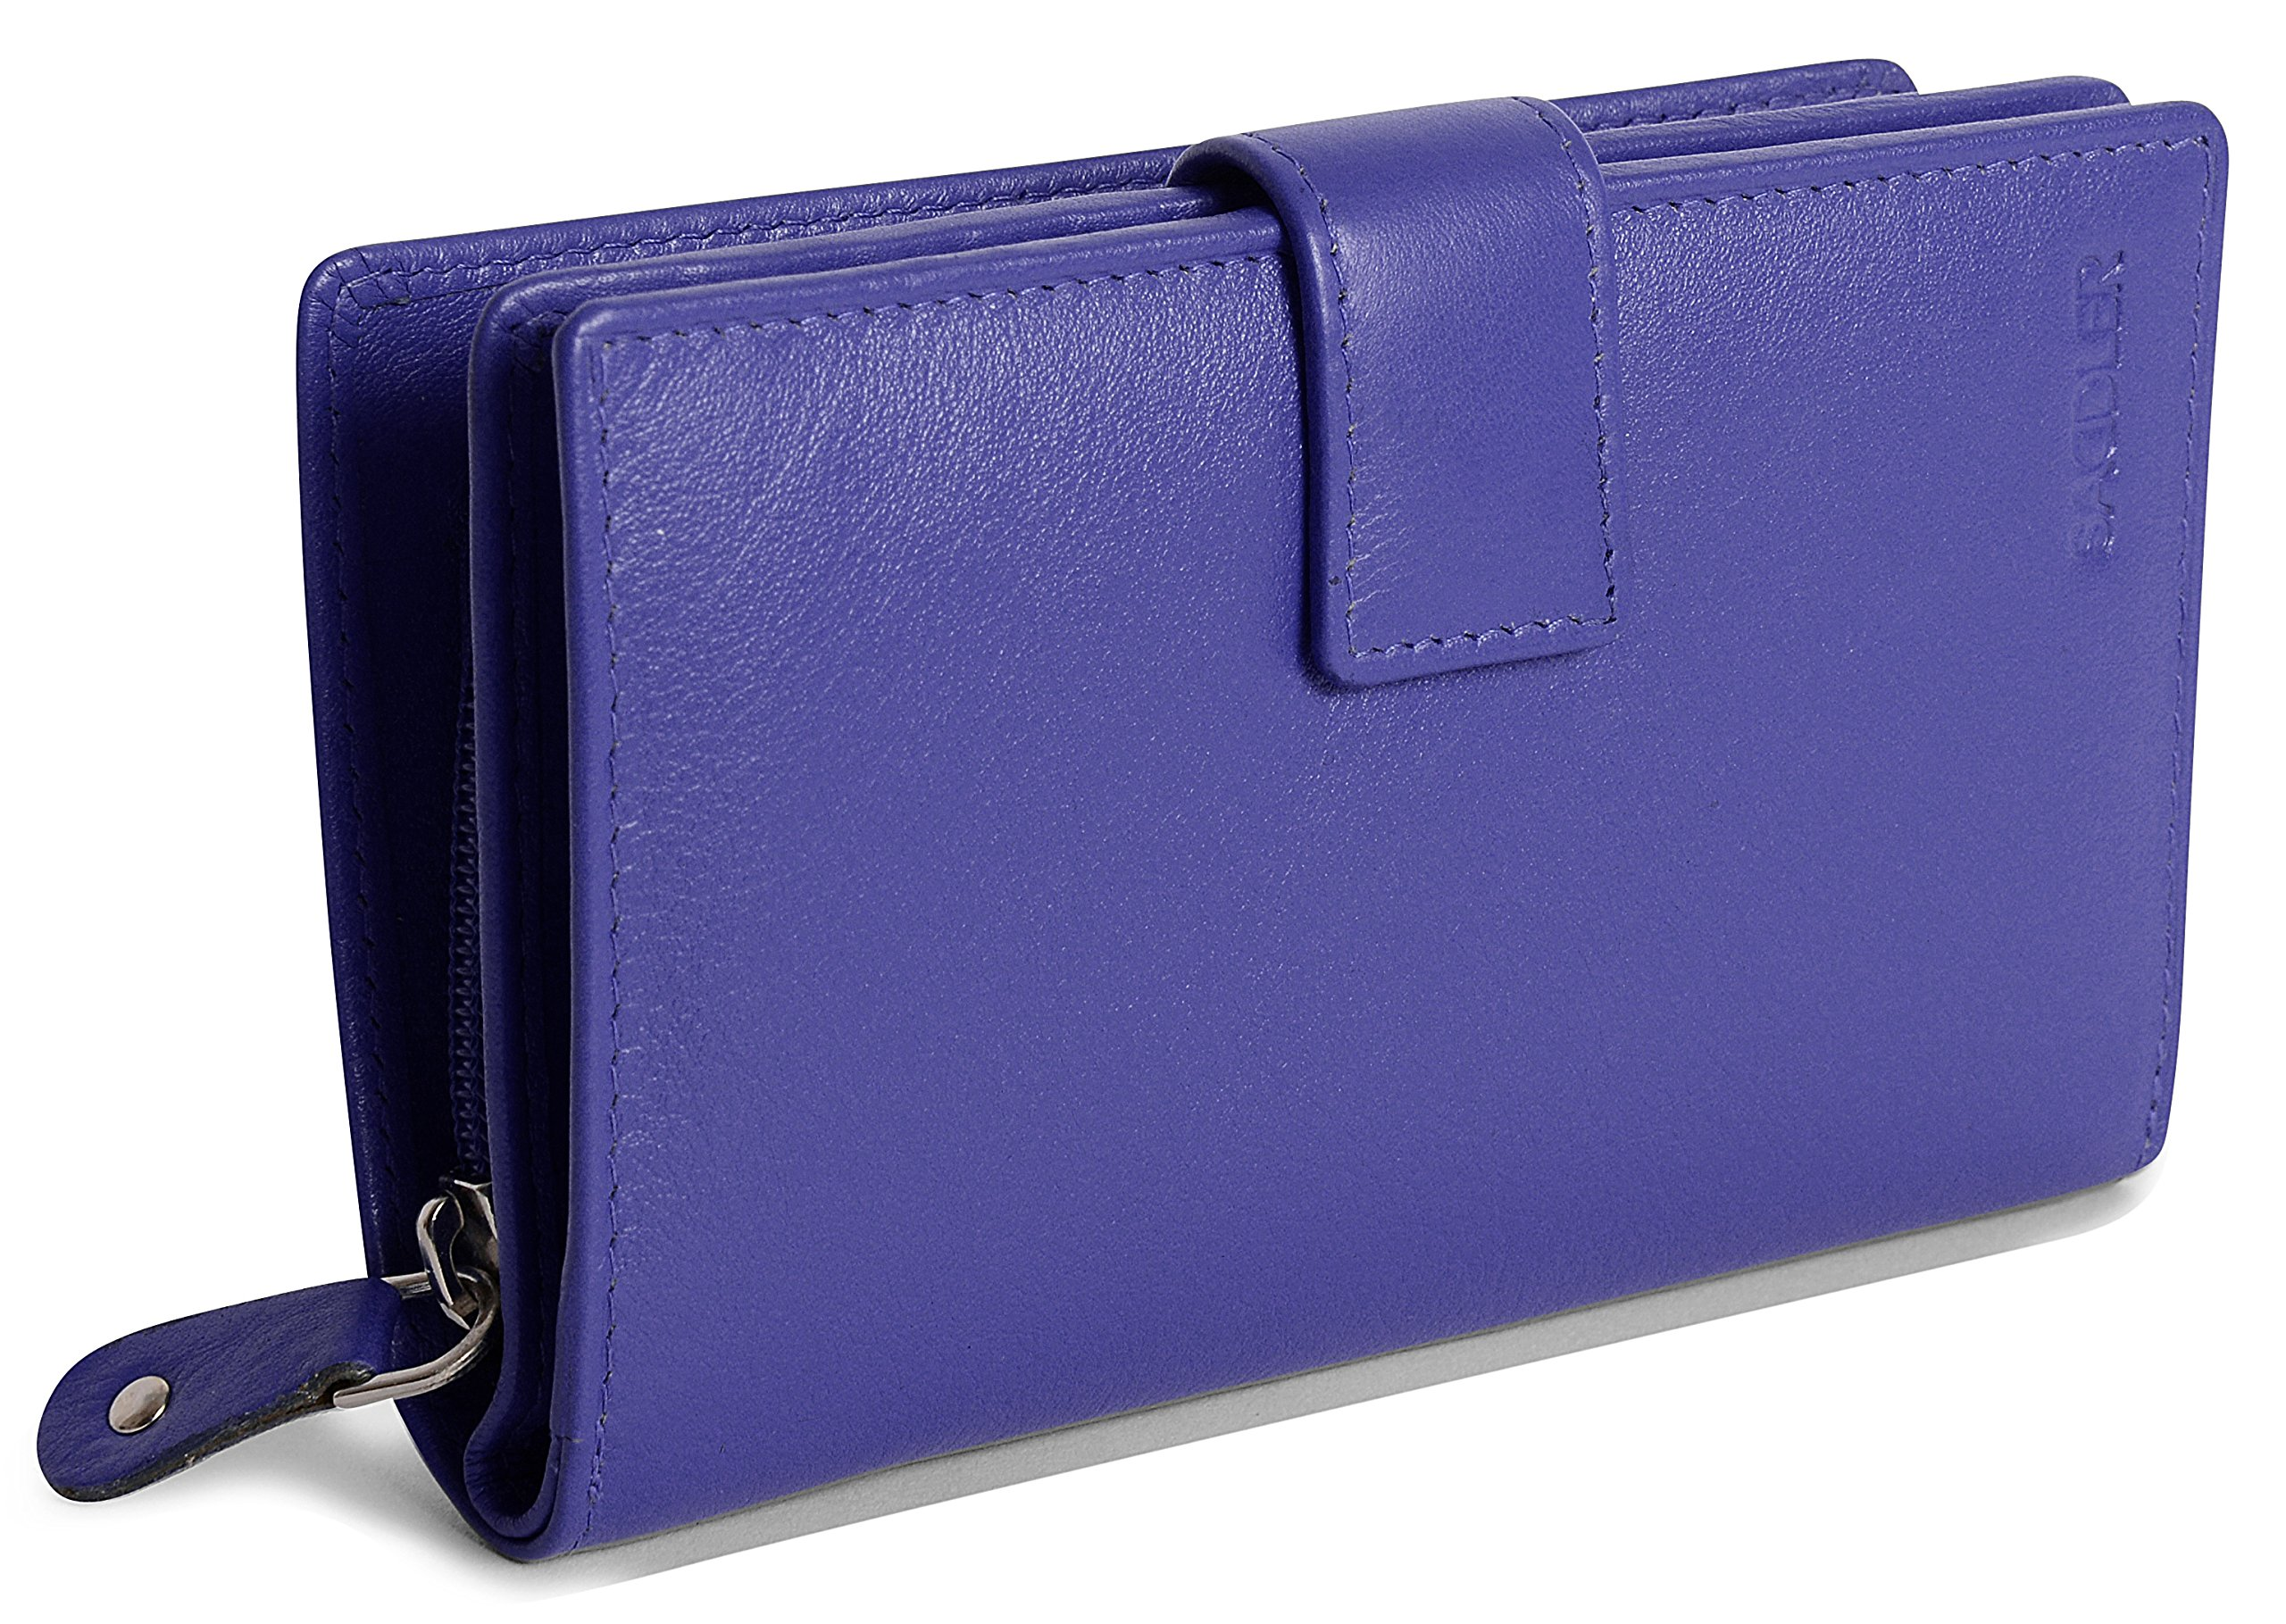 SADDLER Womens Nappa Leather Medium Tab Wallet with Zipper Coin Purse - Ultraviolet